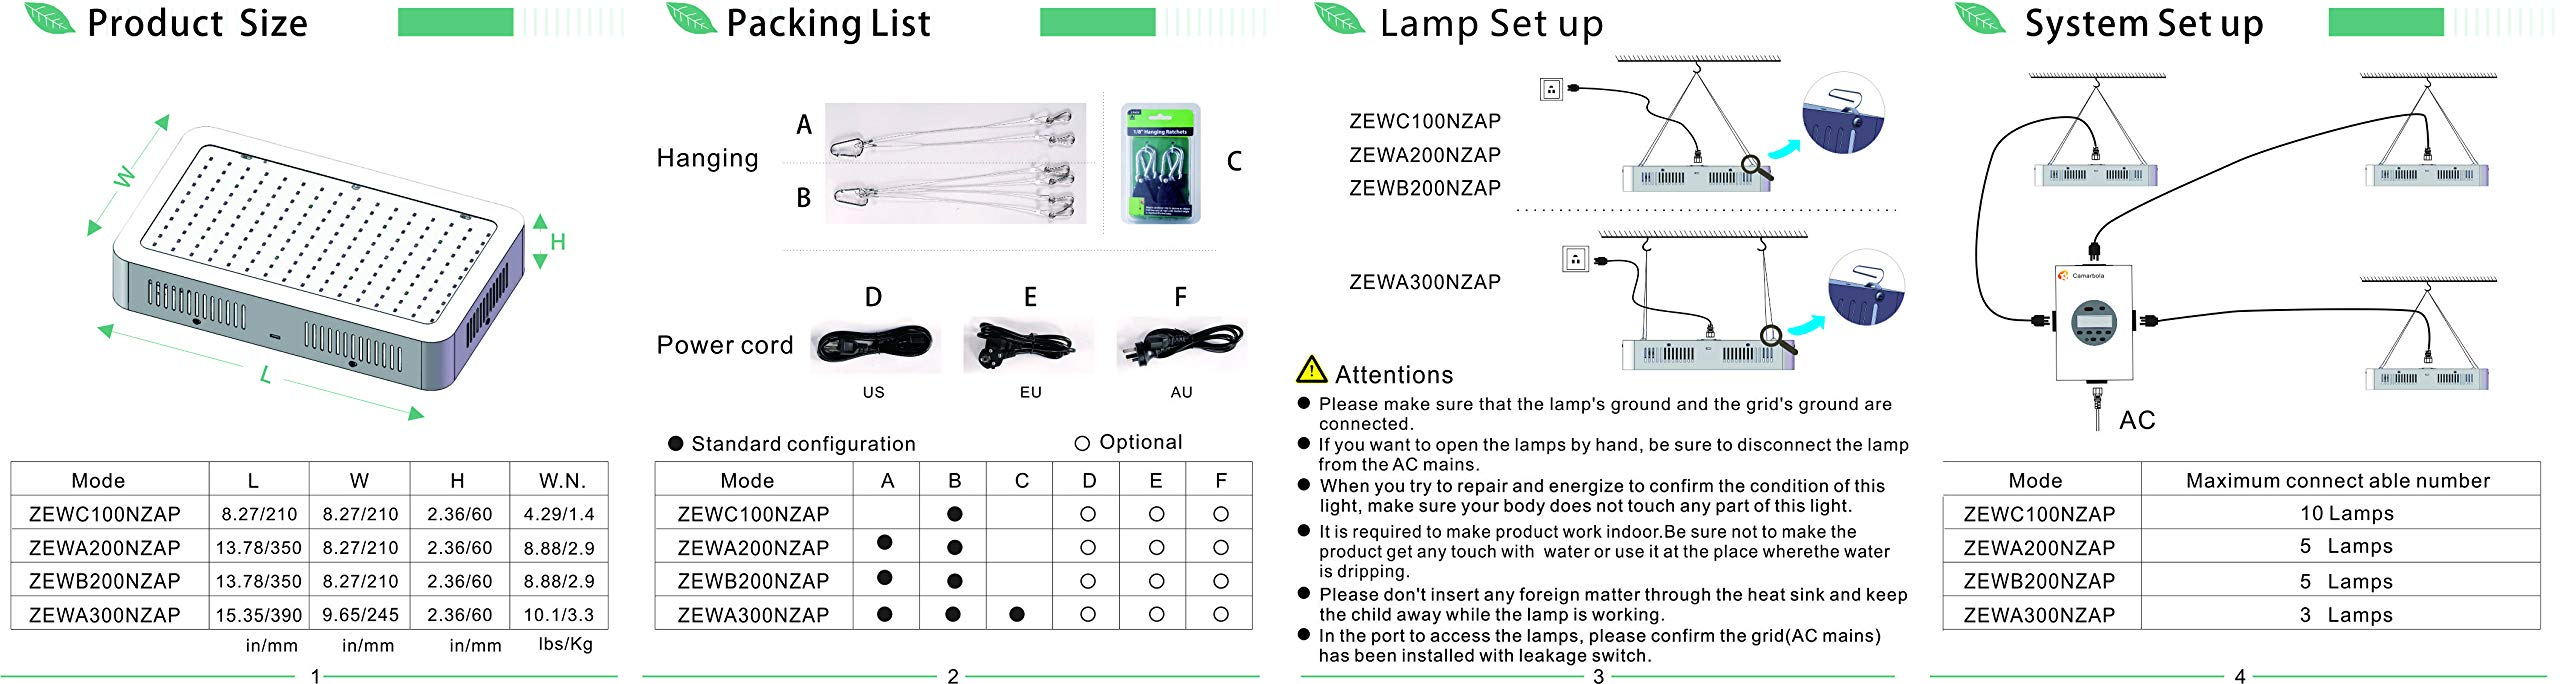 LED Grow Light 2000W, Vander Full Spectrum Led Light Hanging Lamp for Greenhouse Hydroponic Indoor Plants Growing Vegetables and Flowers by Apelila Semper